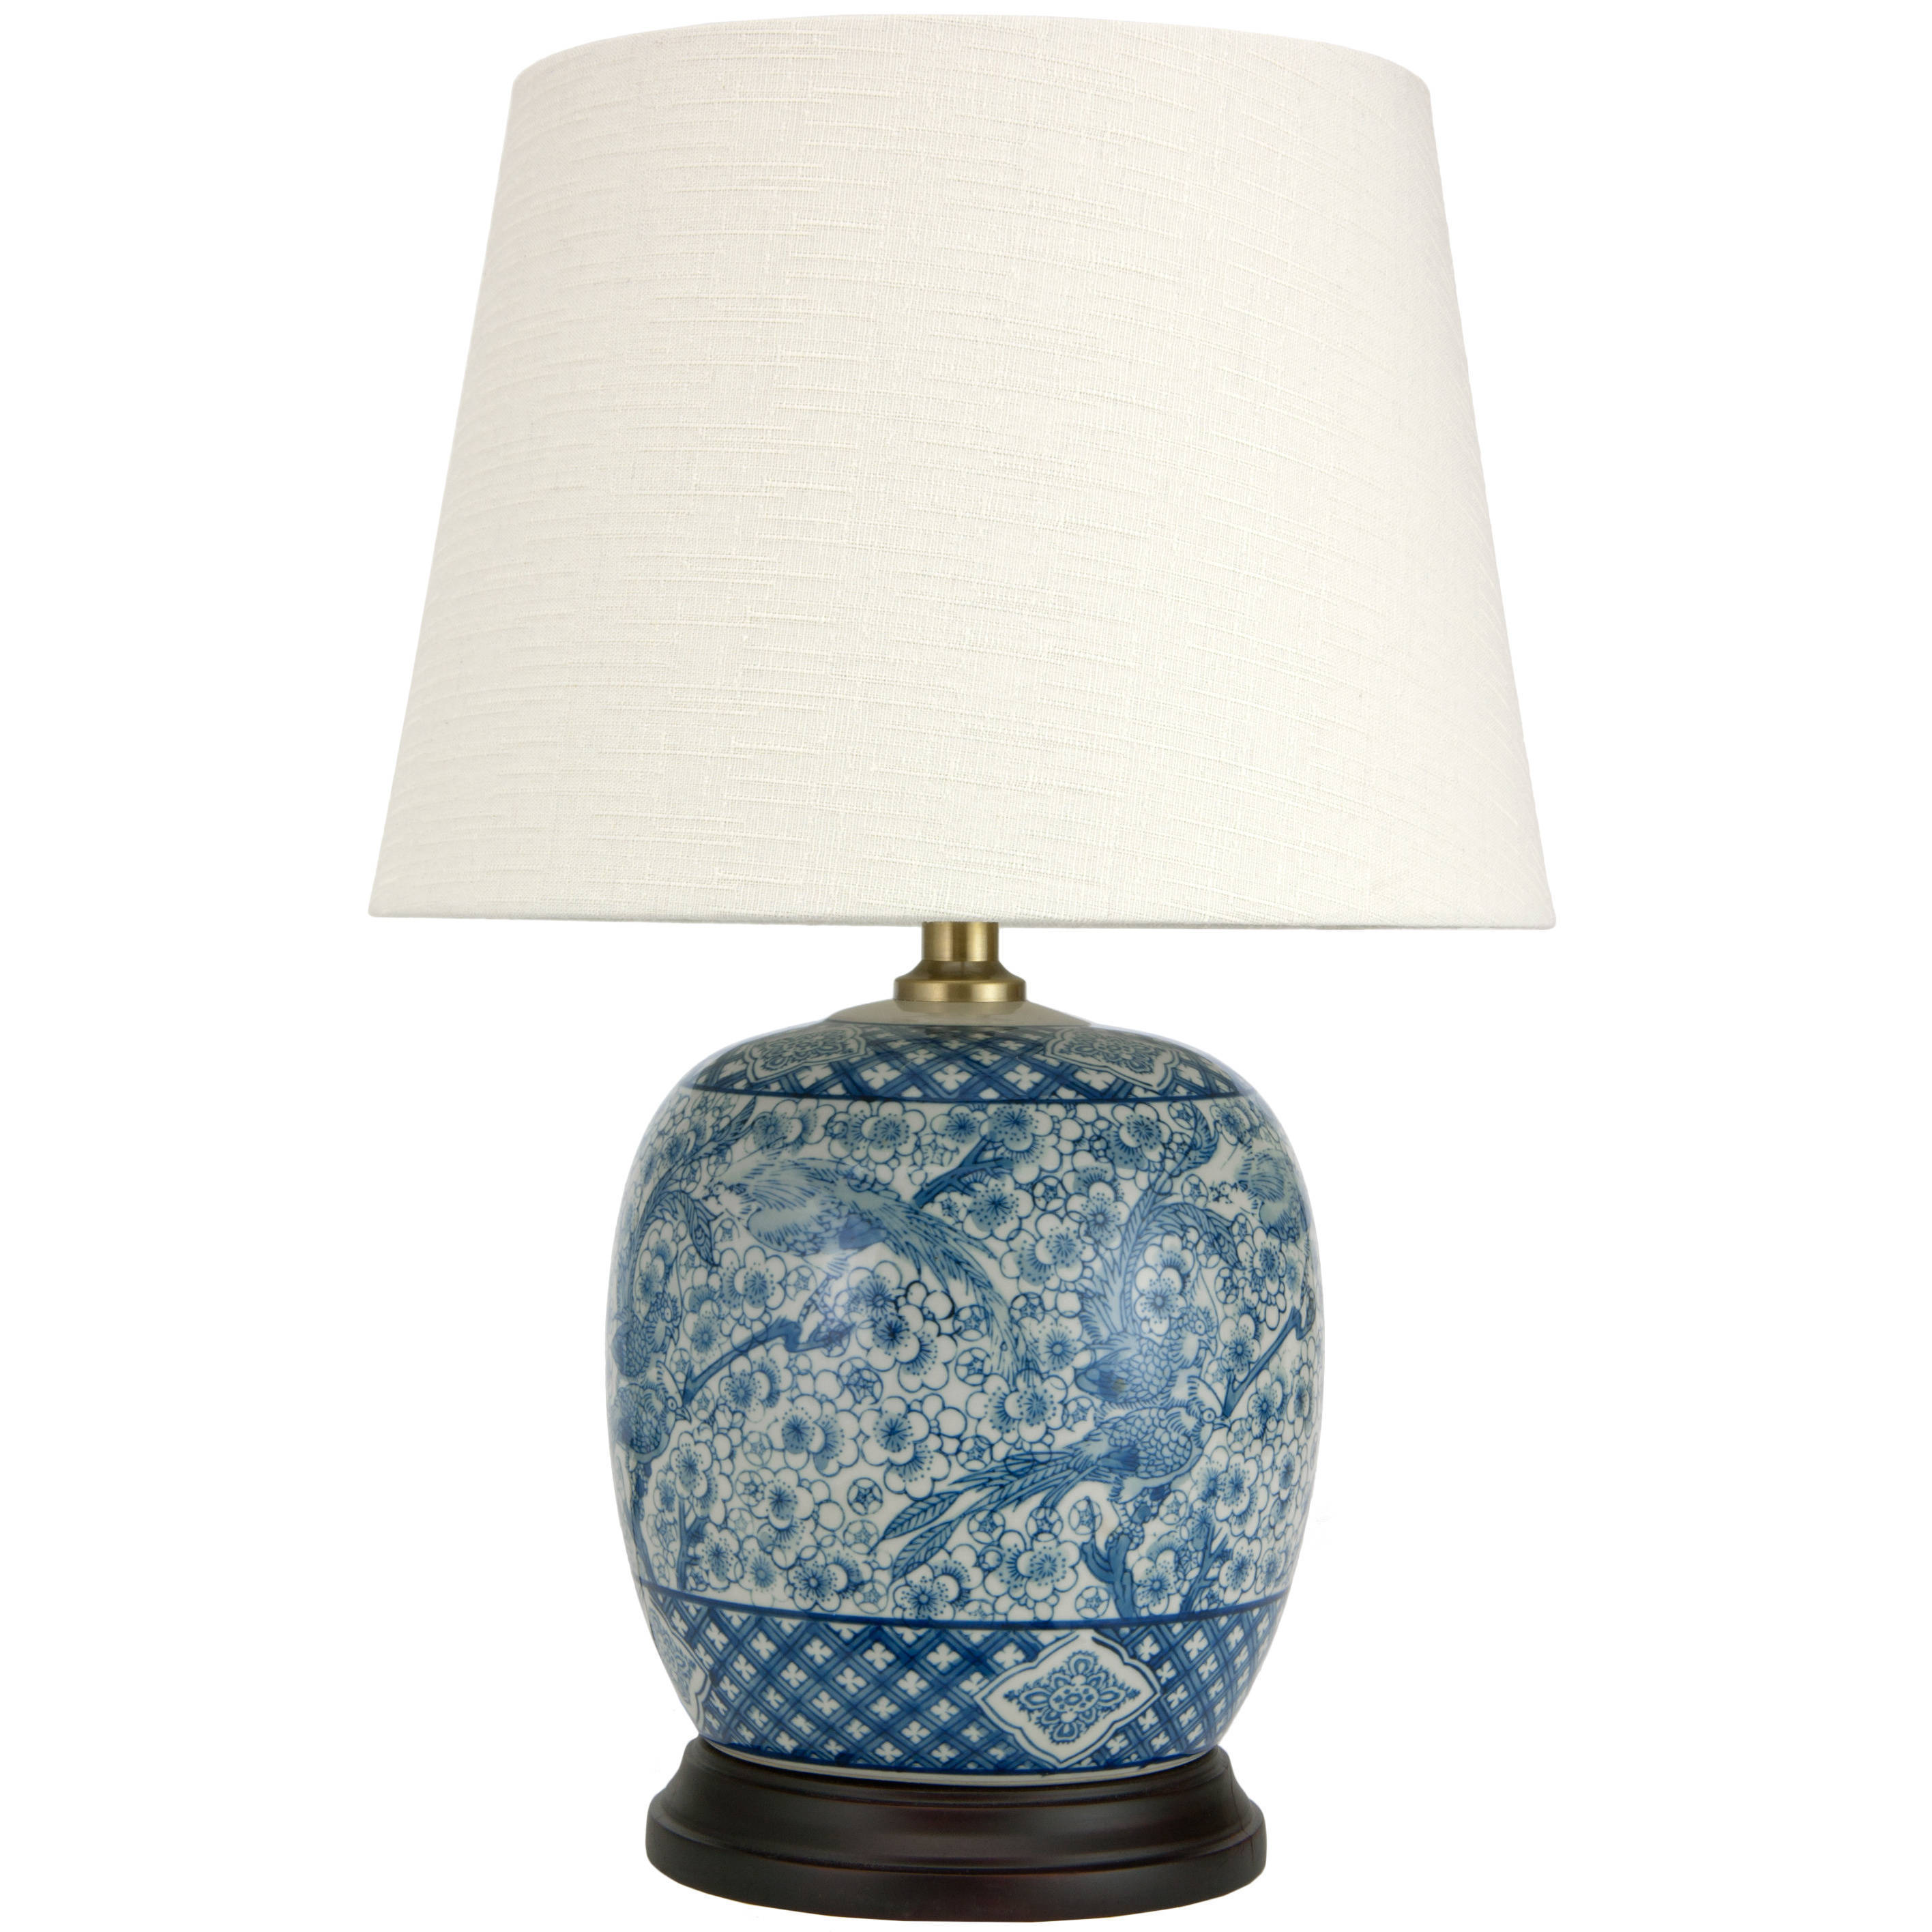 Handmade 20 Classic Blue And White Porcelain Jar Lamp 13 W X 13 D X 20 H Overstock 8672767